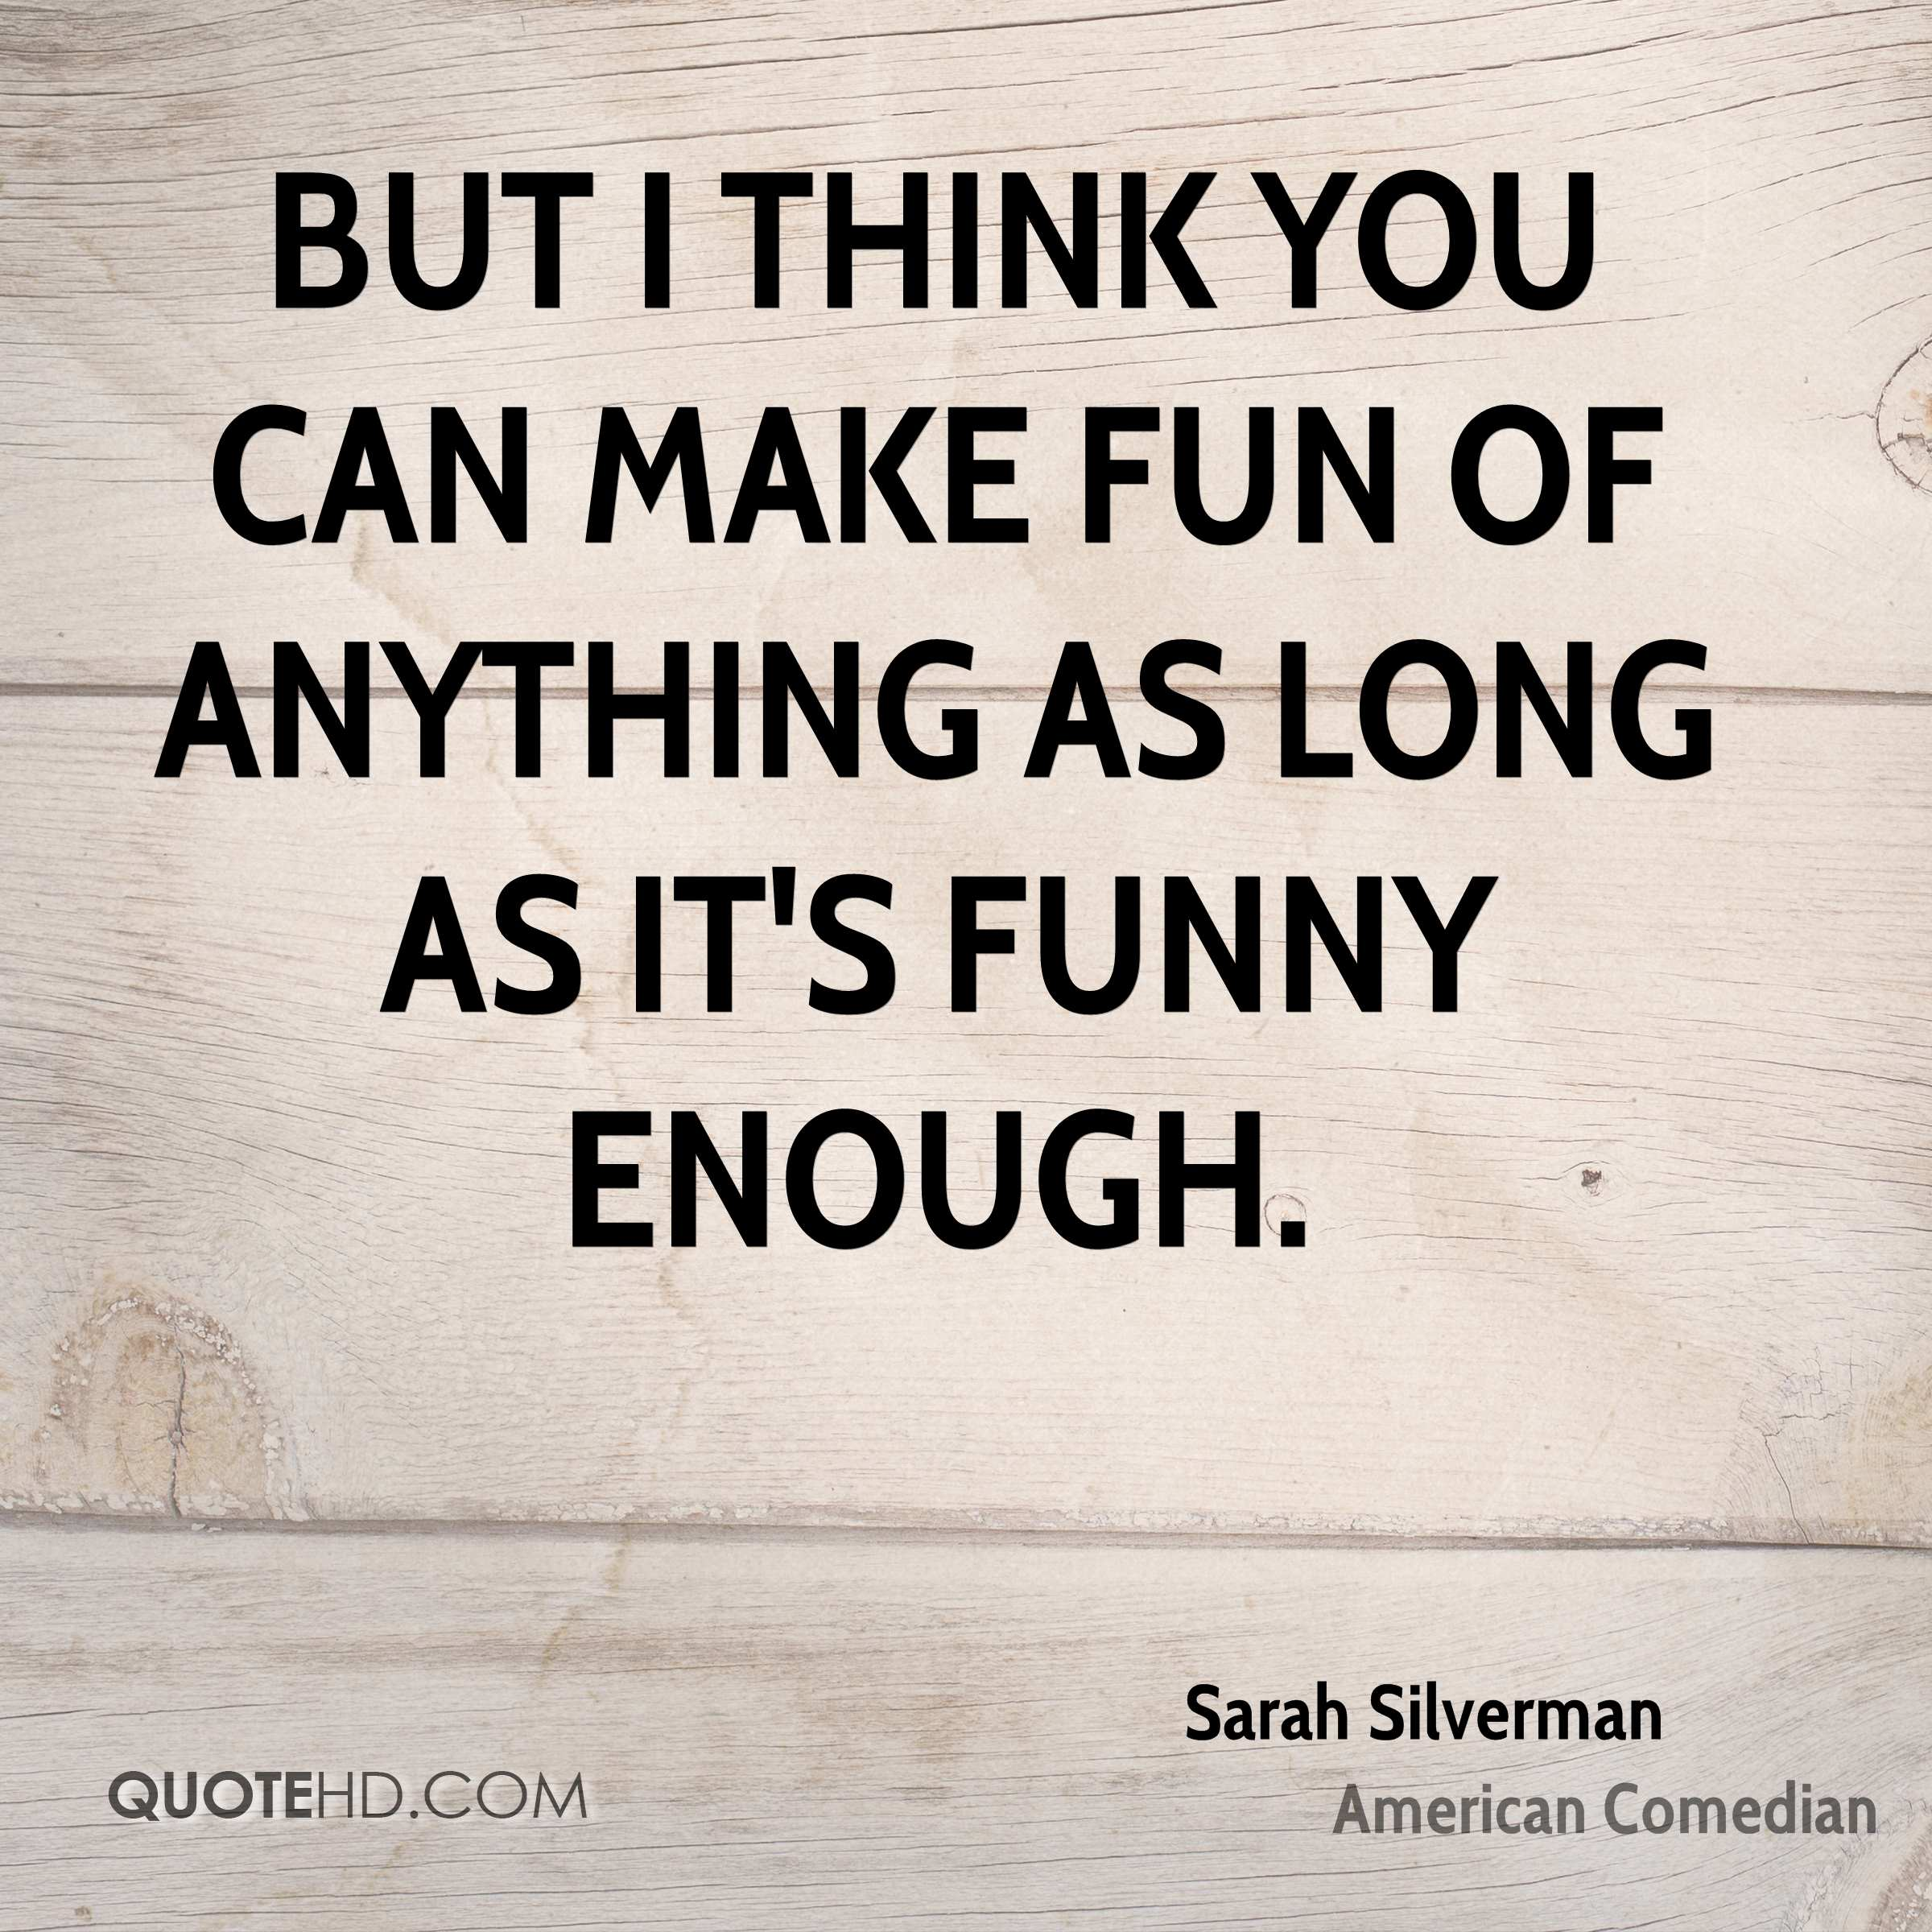 Funny Life Quotes That Make You Think: Sarah Silverman Funny Quotes